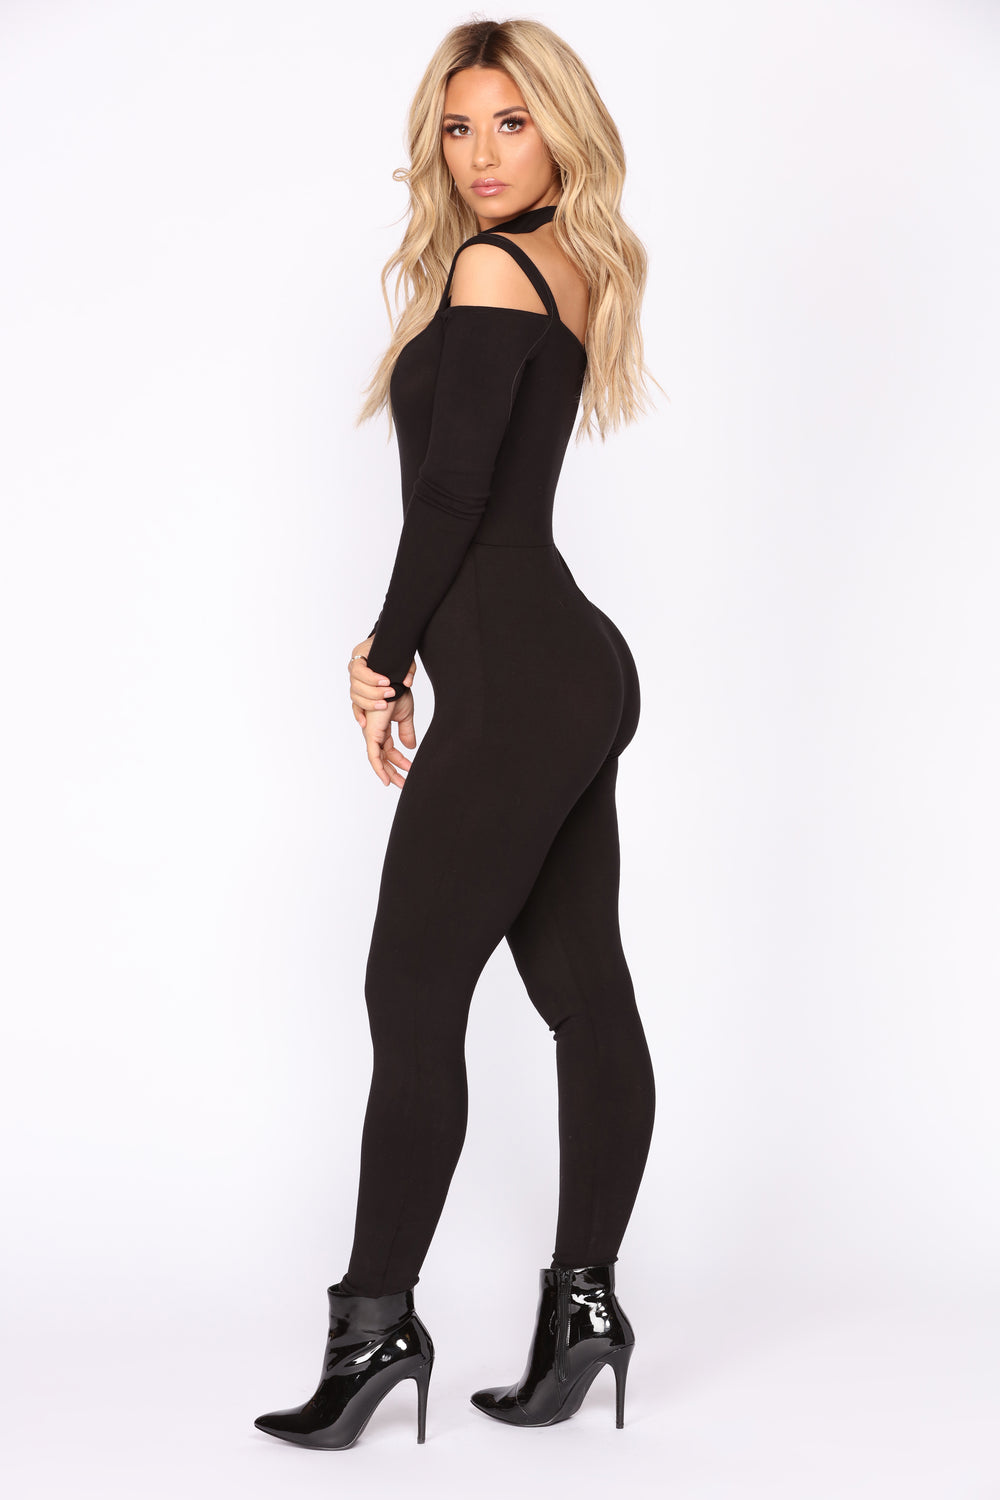 High Hopes Choker Jumpsuit - Black